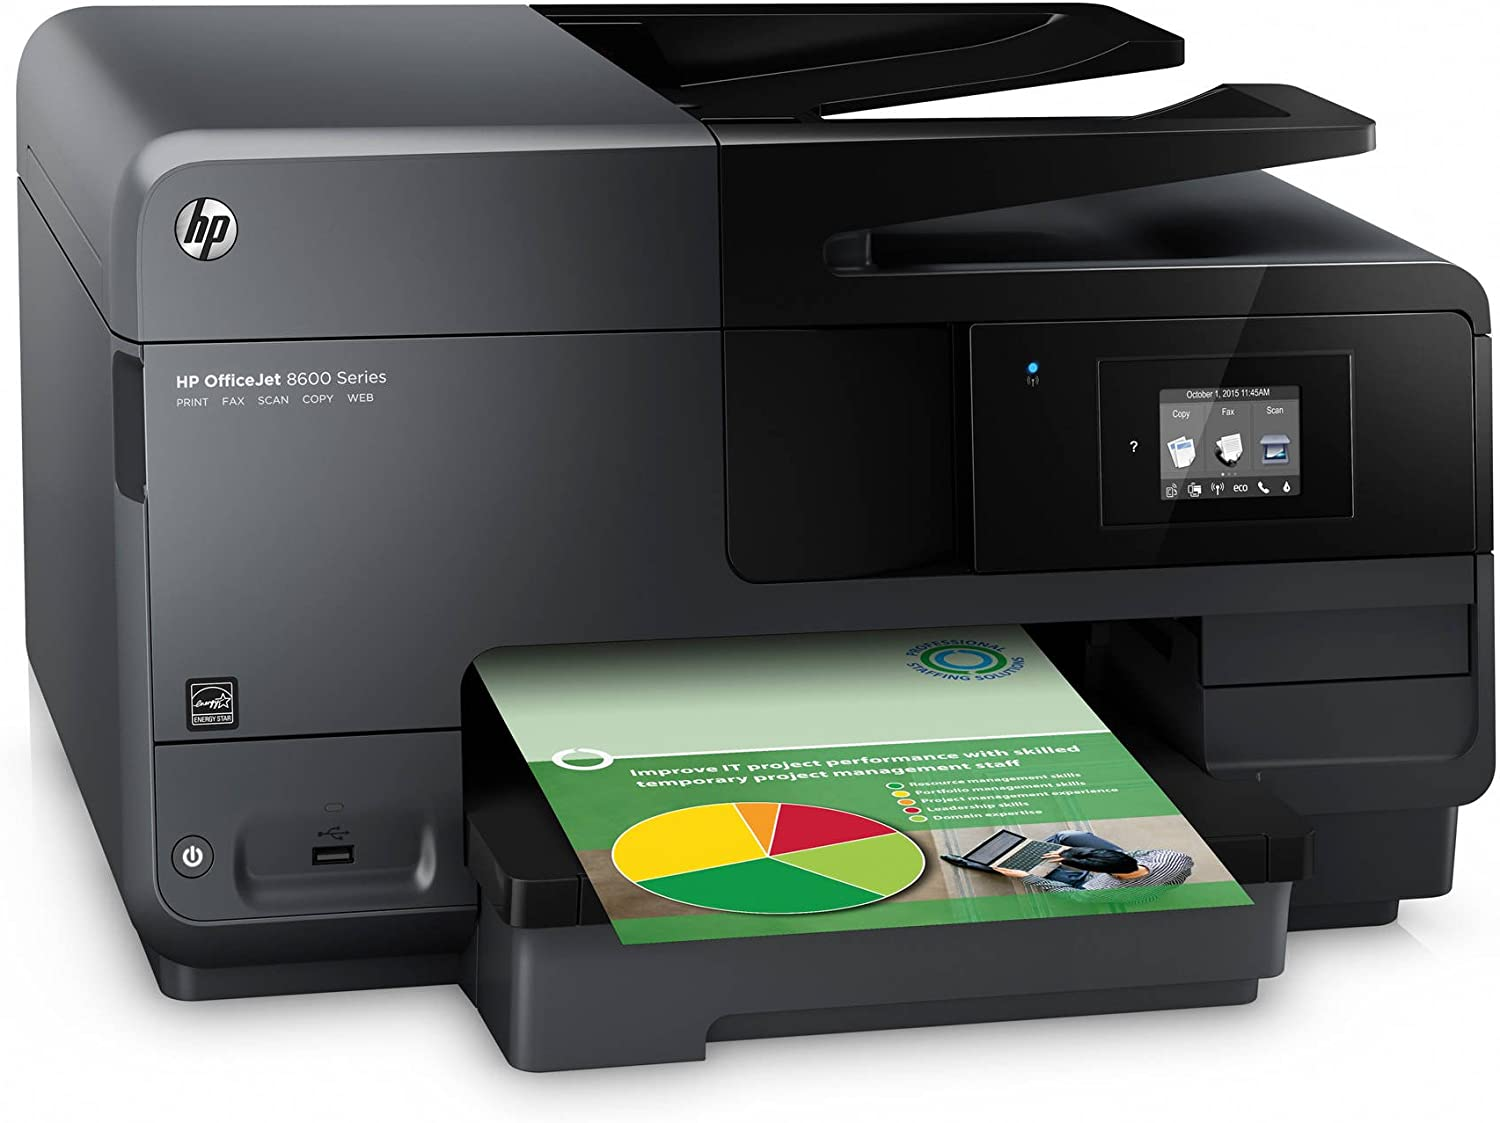 HP OfficeJet 8600 Inkjet e-All-in-One Wireless Color Multifunction Two-Sided Printing Printer, Copier, Scanner & Fax Machine with Mobile Printing